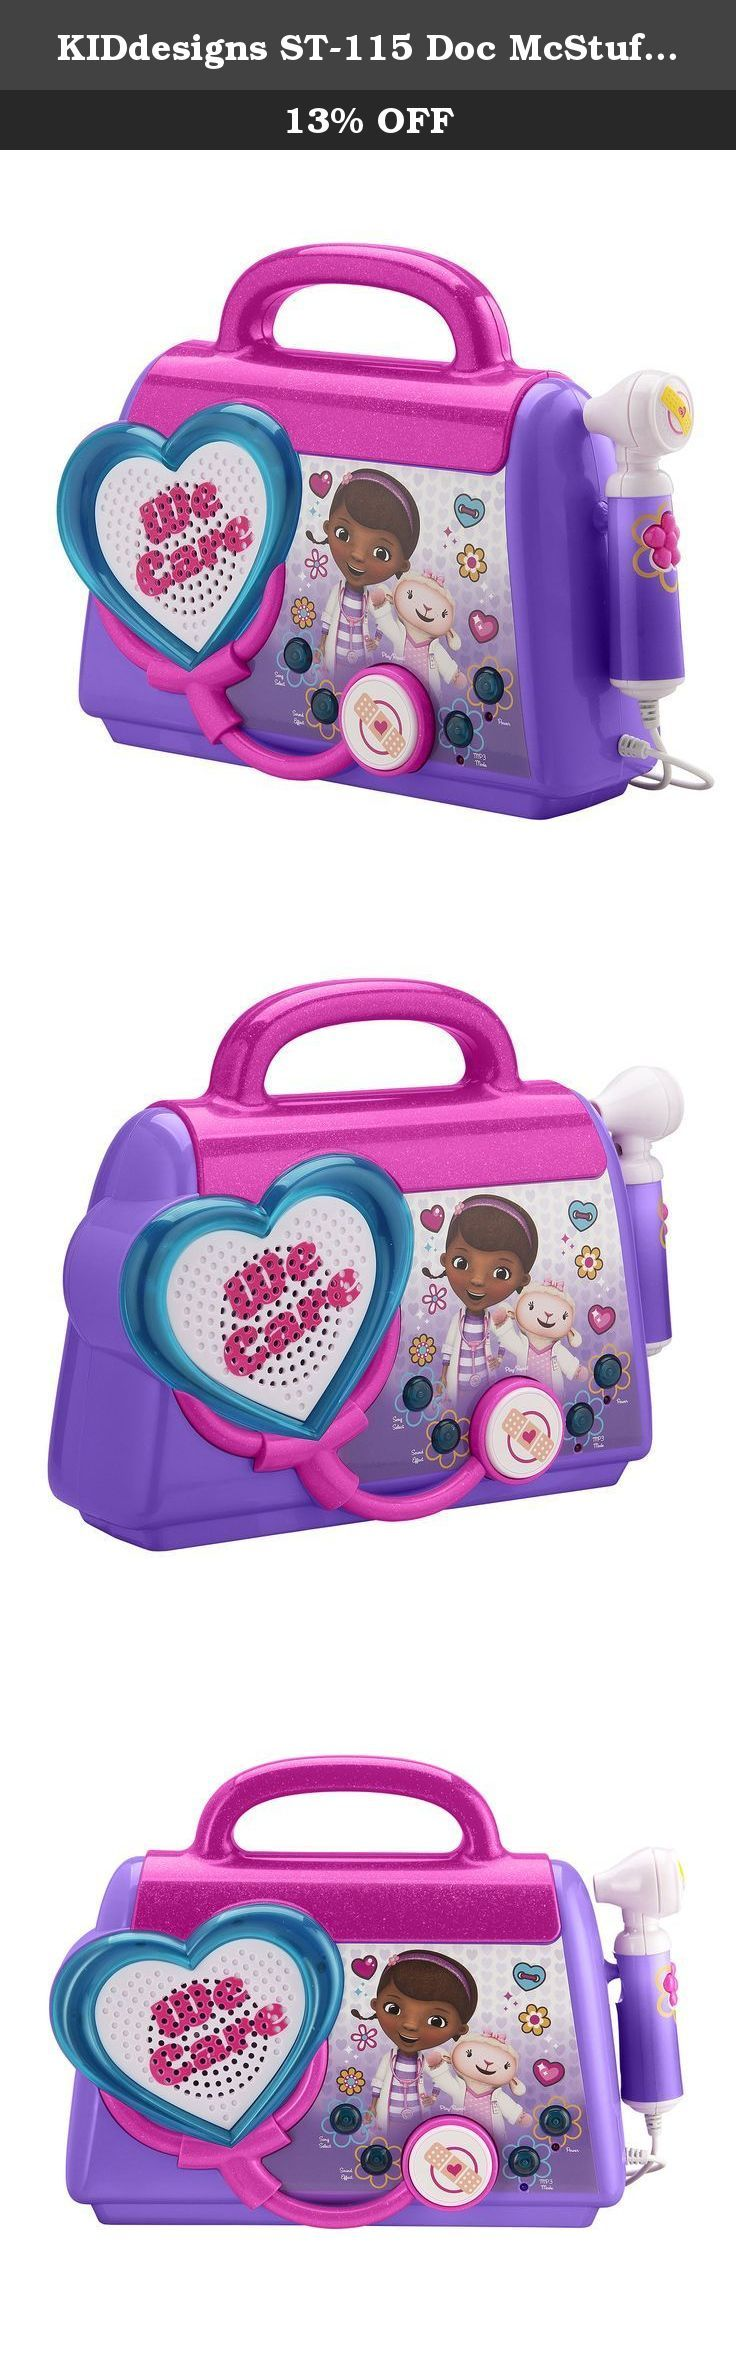 KIDdesigns ST-115 Doc McStuffins Rockin' Doc Sing-Along Boombox. Product Description Join Doc McStuffins and her friends to sing along with the built-in songs, or connect your MP3 Player to rock to your own tunes. You can even play fun speech and sound effects from the show. Give your toys a quick check-up with the included accessories. Boo boos be gone and music rock on!!!.